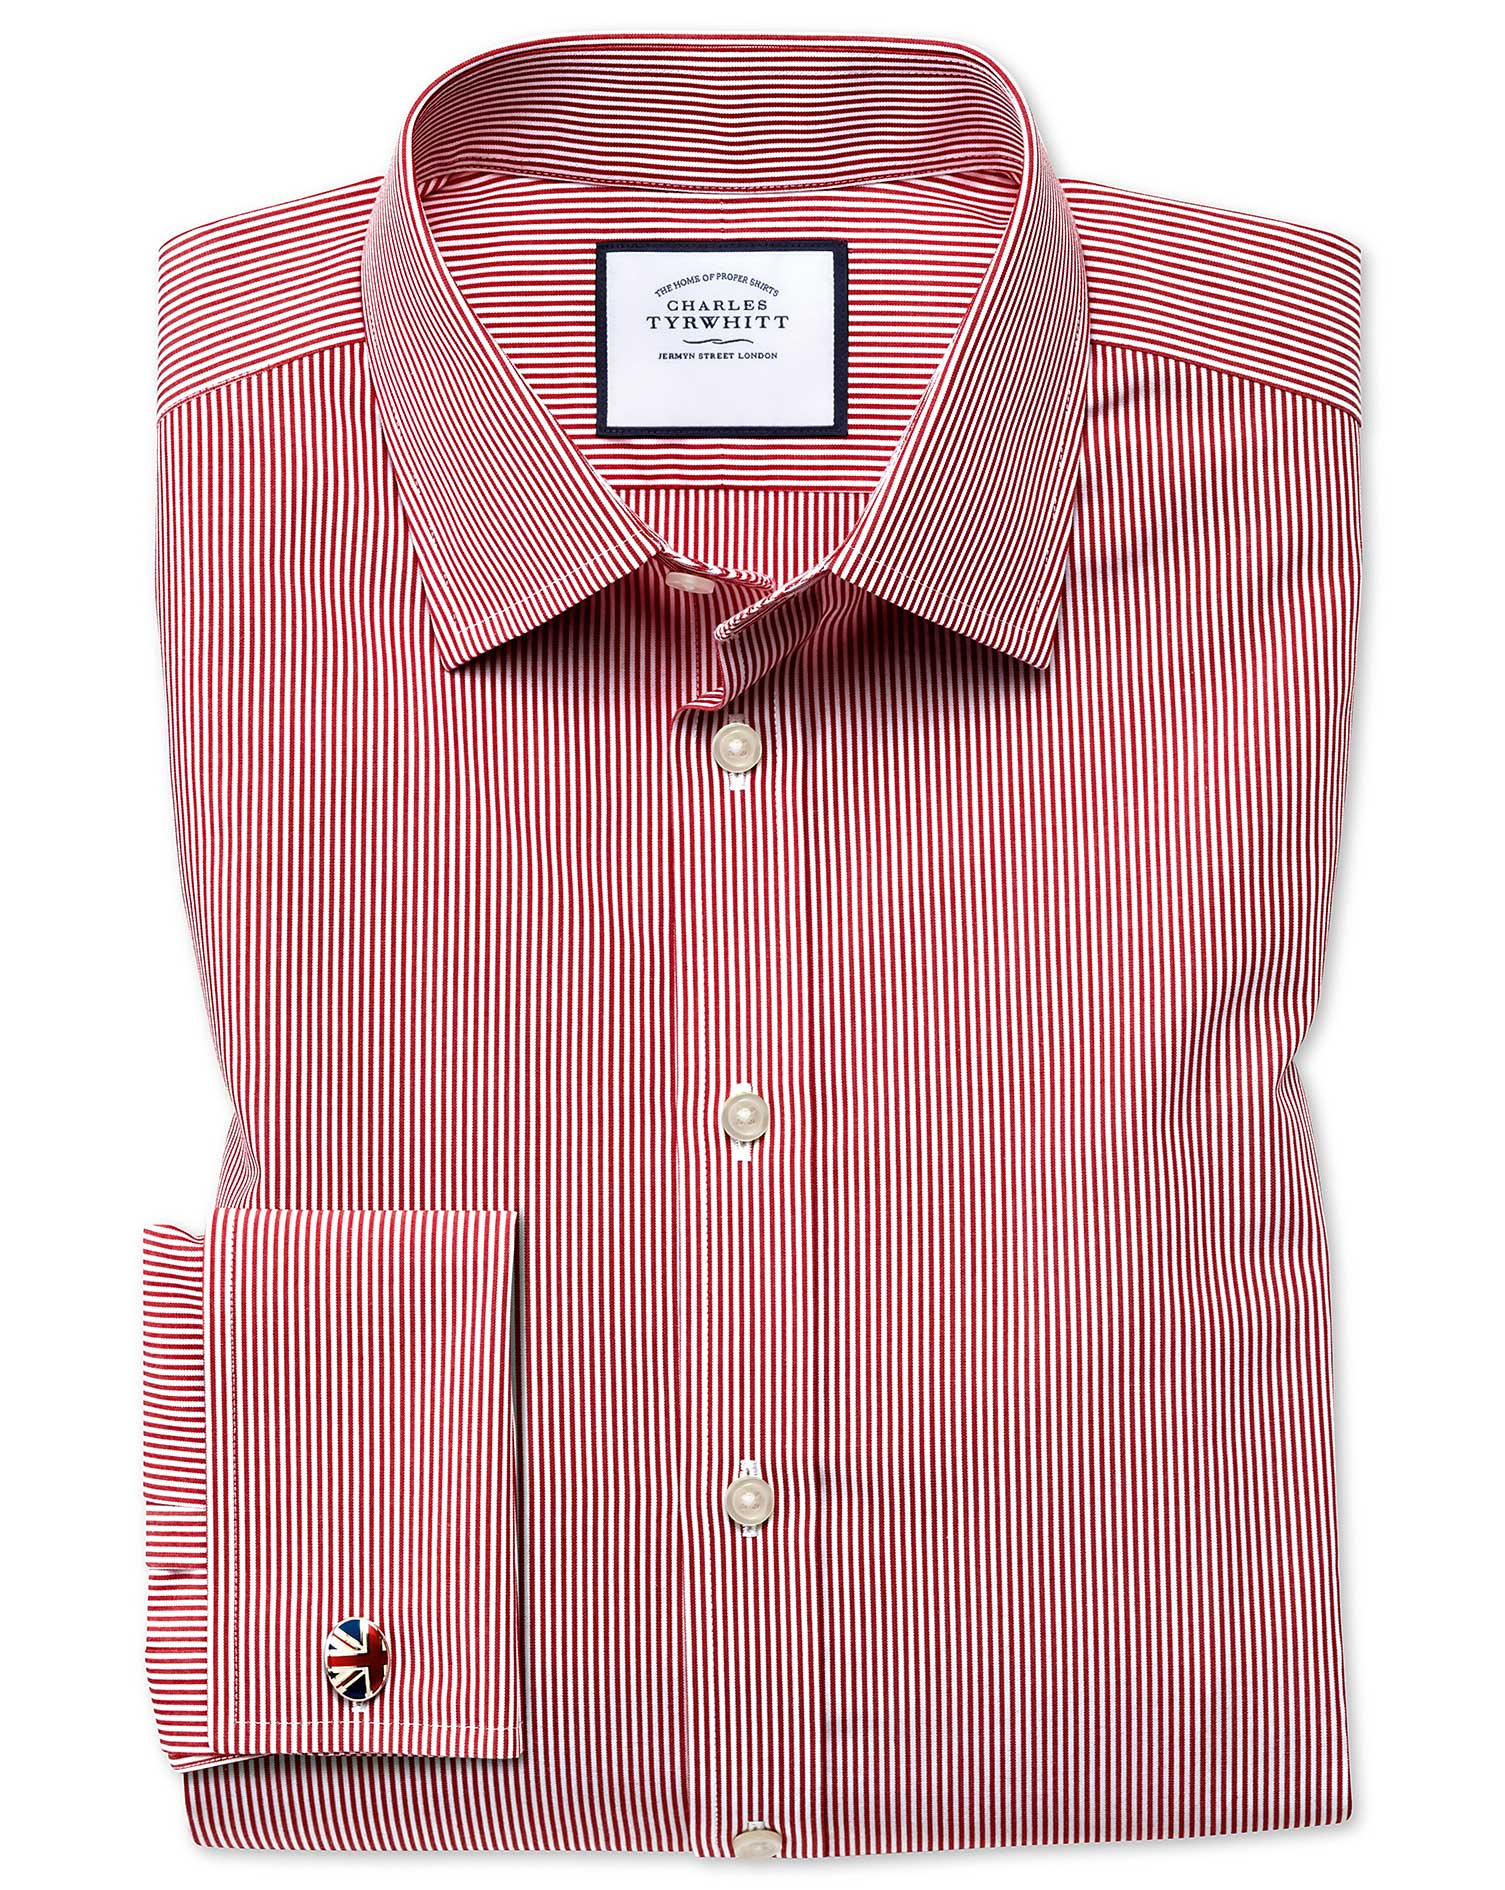 Slim Fit Non-Iron Bengal Stripe Red Cotton Formal Shirt Double Cuff Size 18/37 by Charles Tyrwhitt